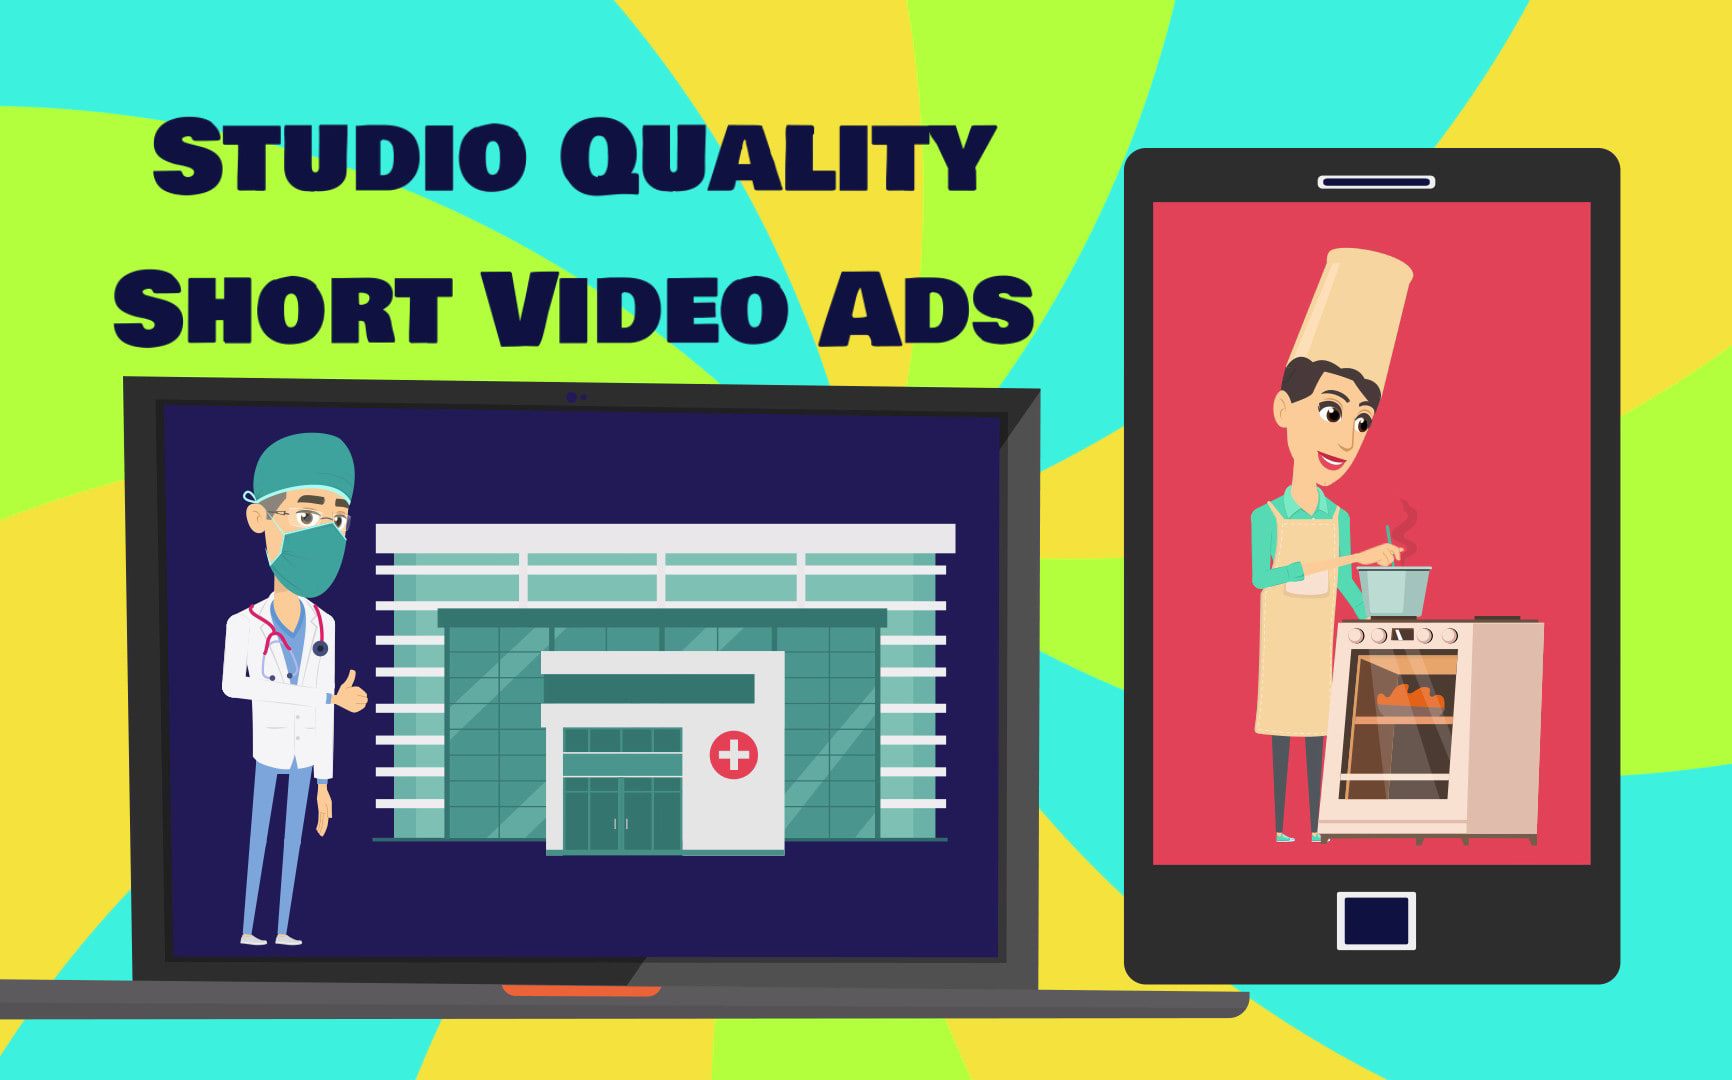 I will make short animated AD videos for you